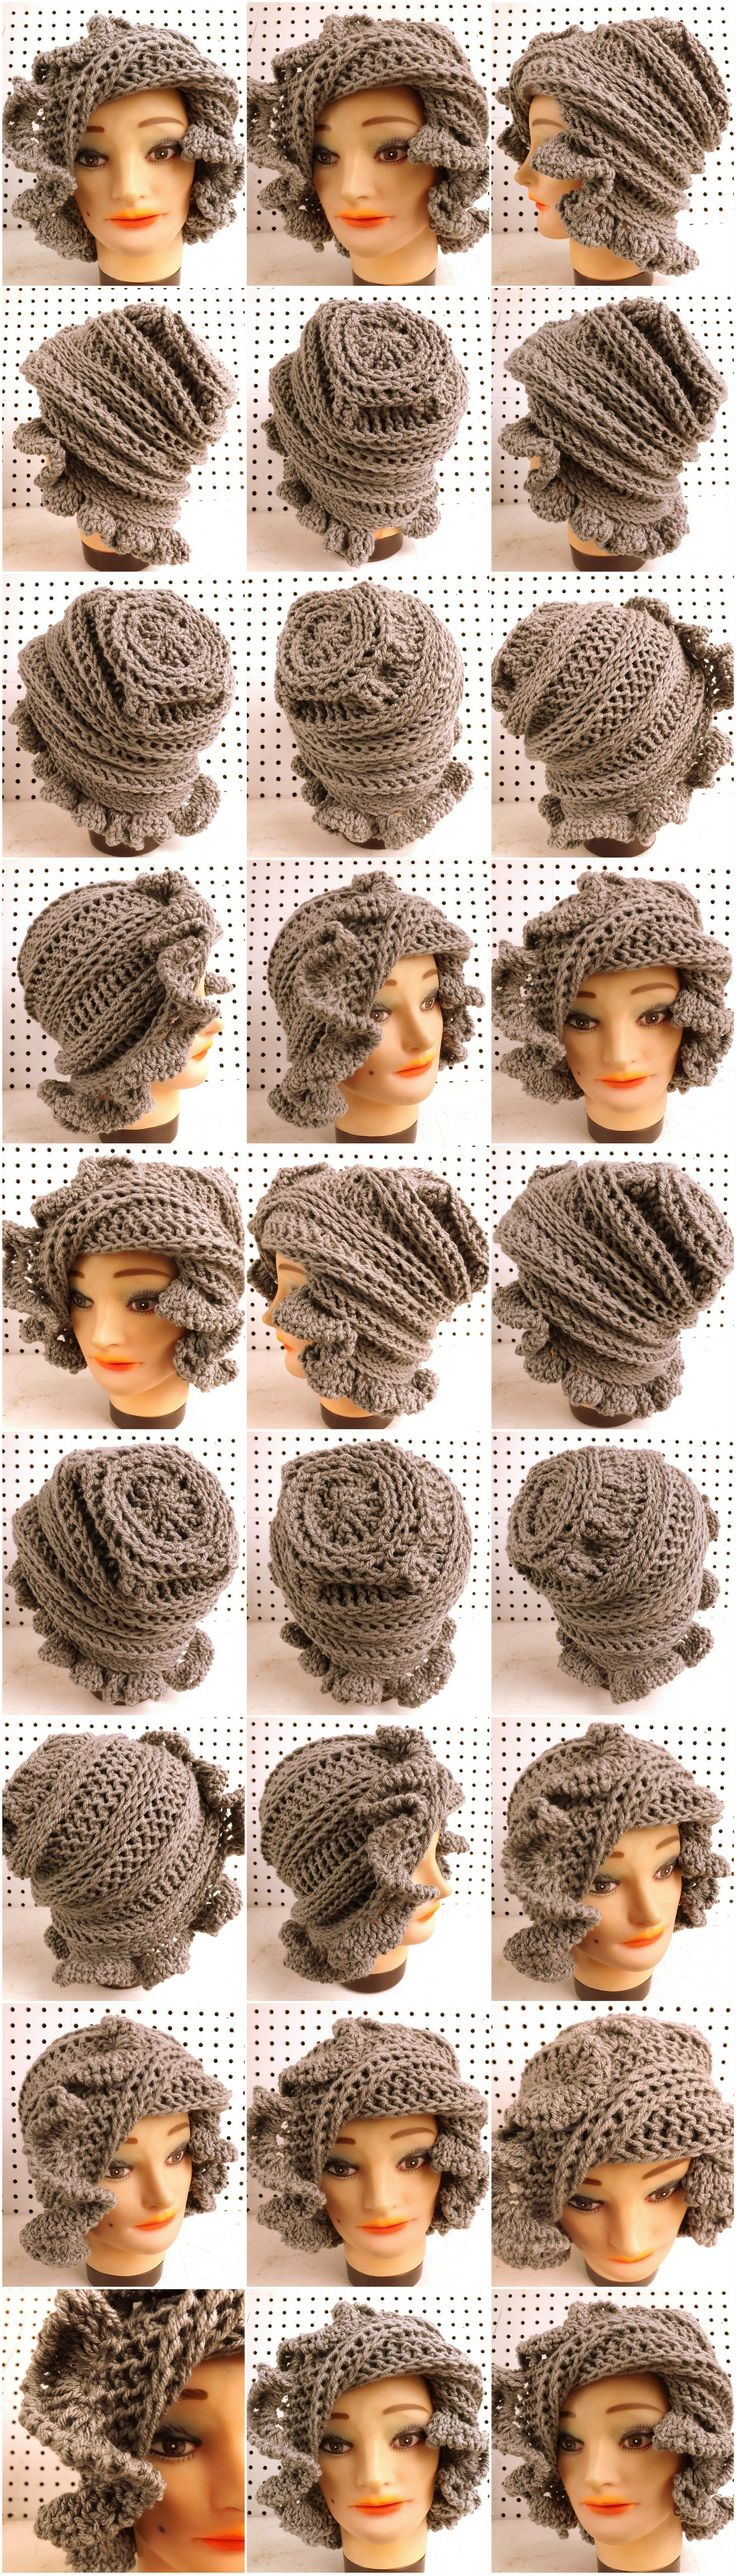 http://www.etsy.com/listing/173166417/unique-crochet-hats-for-women-slouchy?ref=shop_home_active CYNTHIA Crochet Beanie Hat in Gray Ruffles decorate around the edge to give a soft and romantic look.